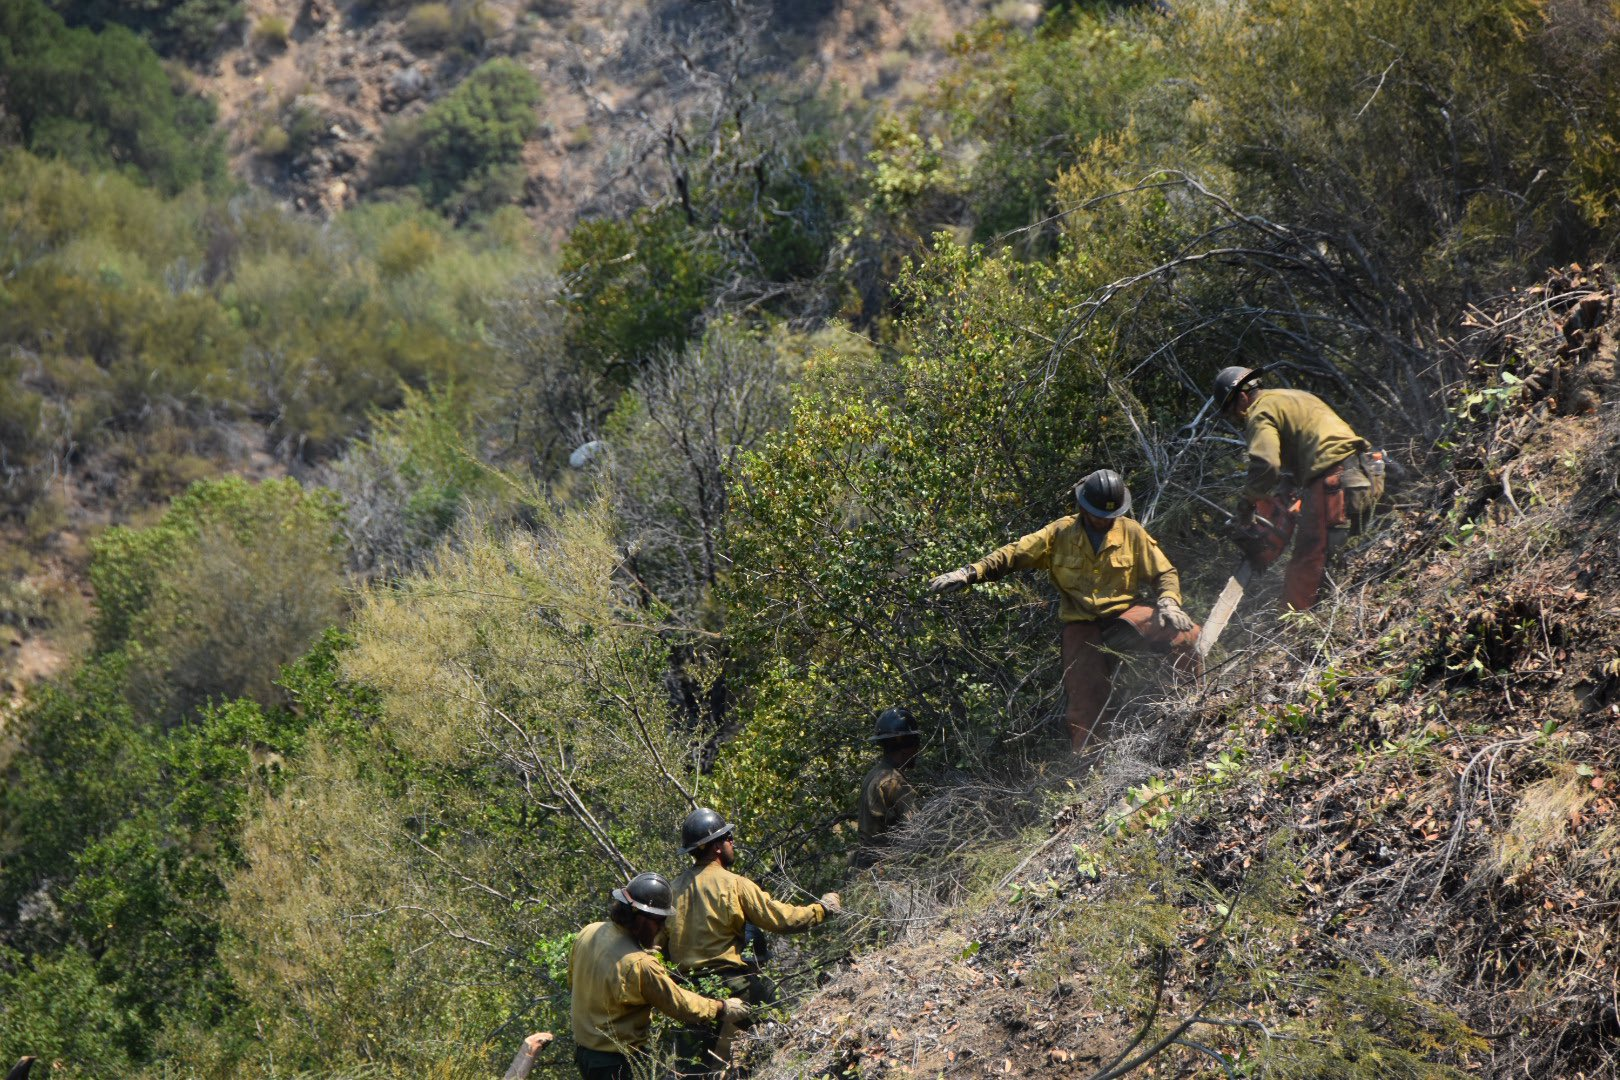 Crews work in the area of Willow fire in Los Padres National Forest on June 21, 2021. (Los Padres National Forest)